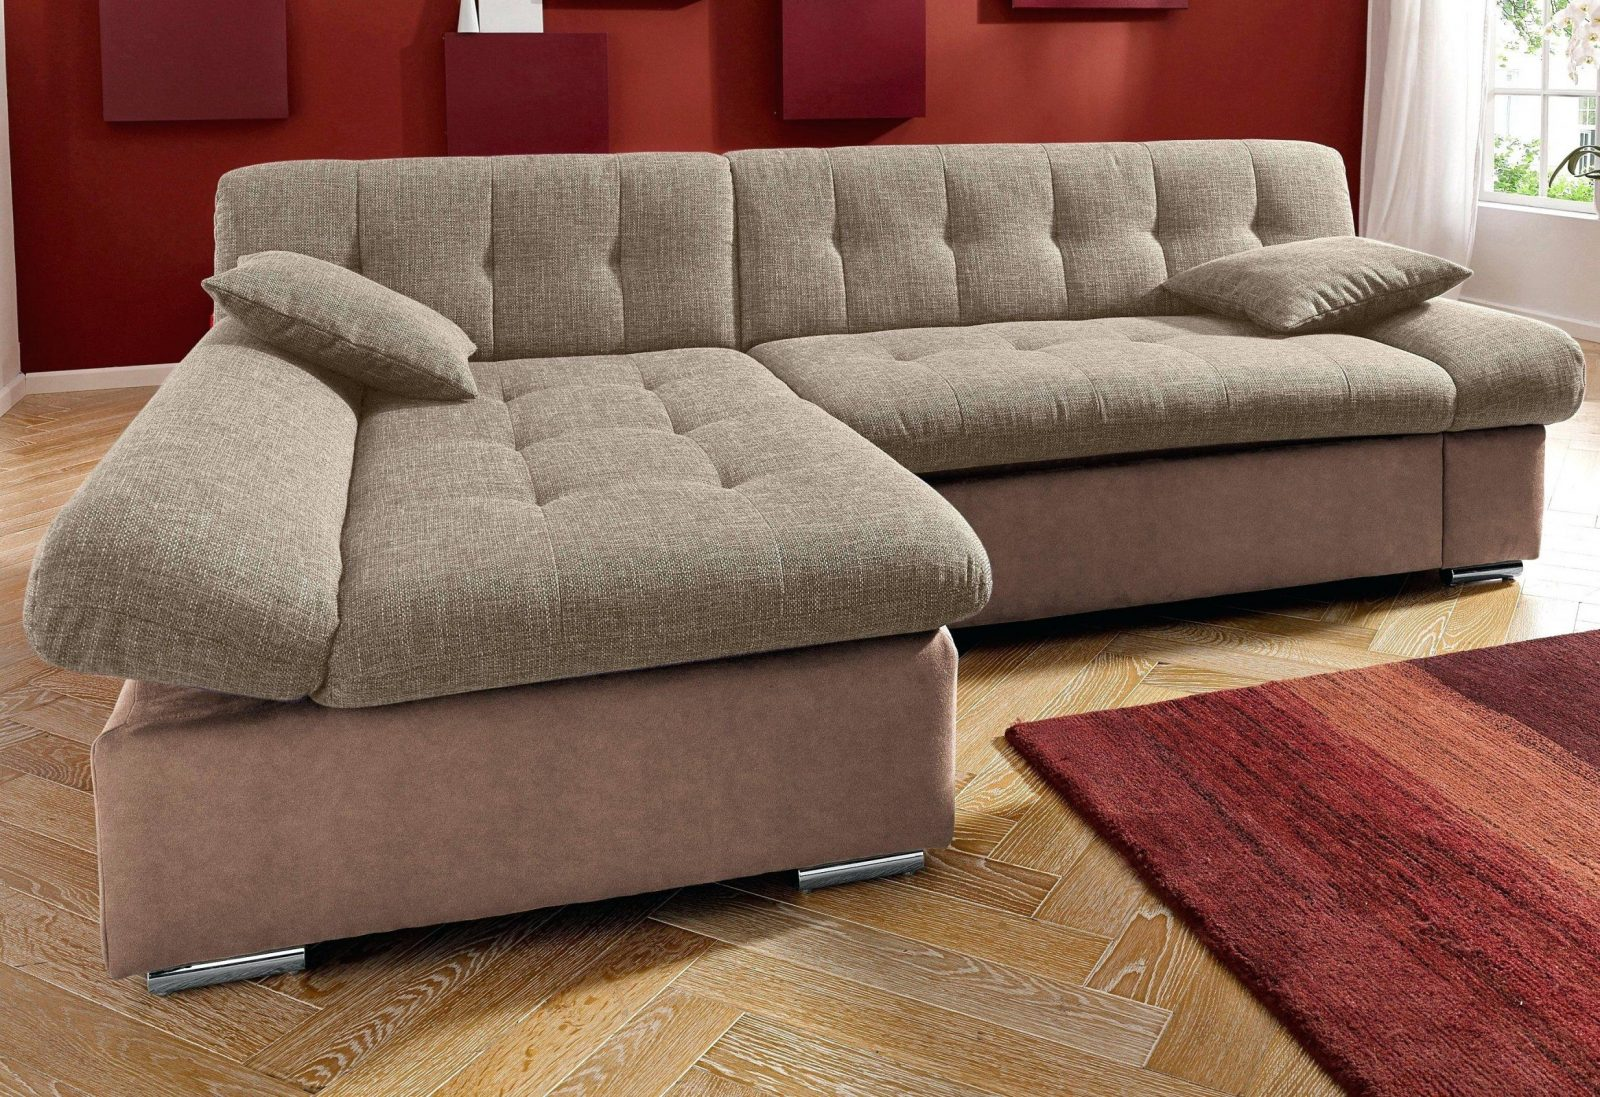 Otto Sofas Mit Bettfunktion Home Otto Big Sofa Mit Bettfunktion von Otto Sofa Mit Bettfunktion Bild